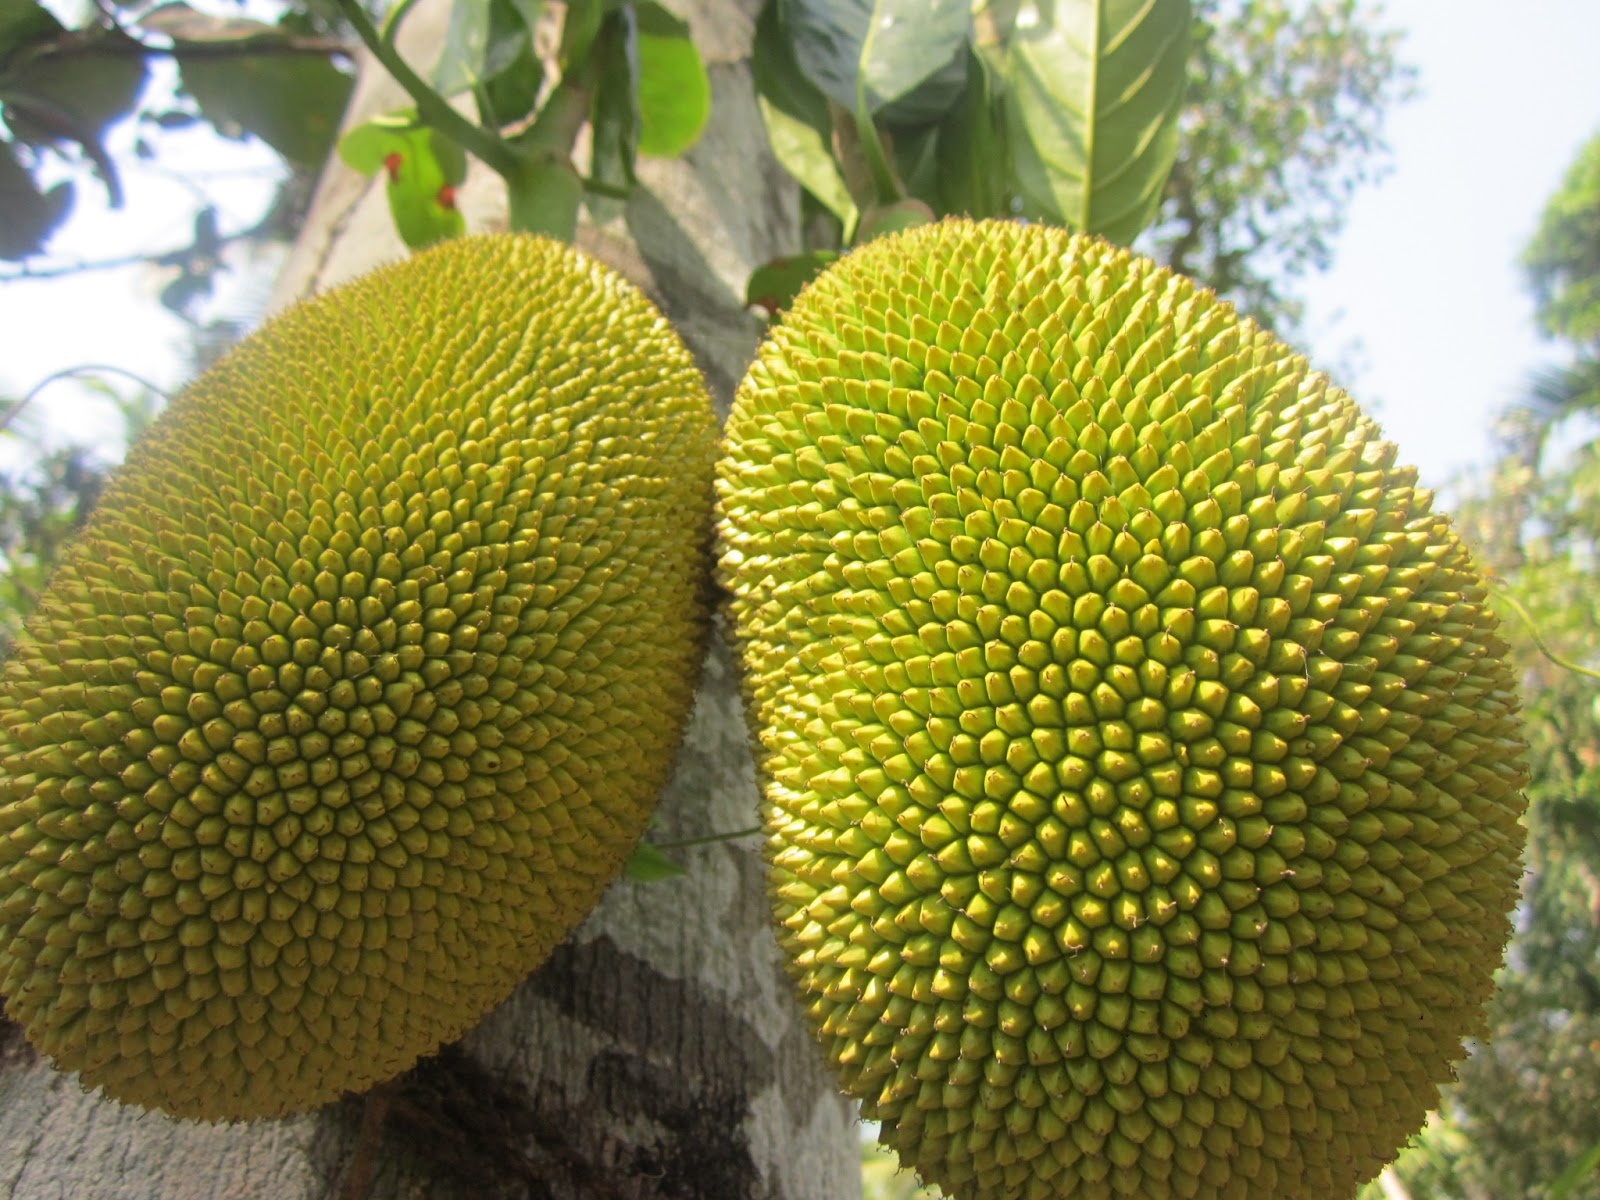 jackfruit vs durian  ways they are not the same, Natural flower